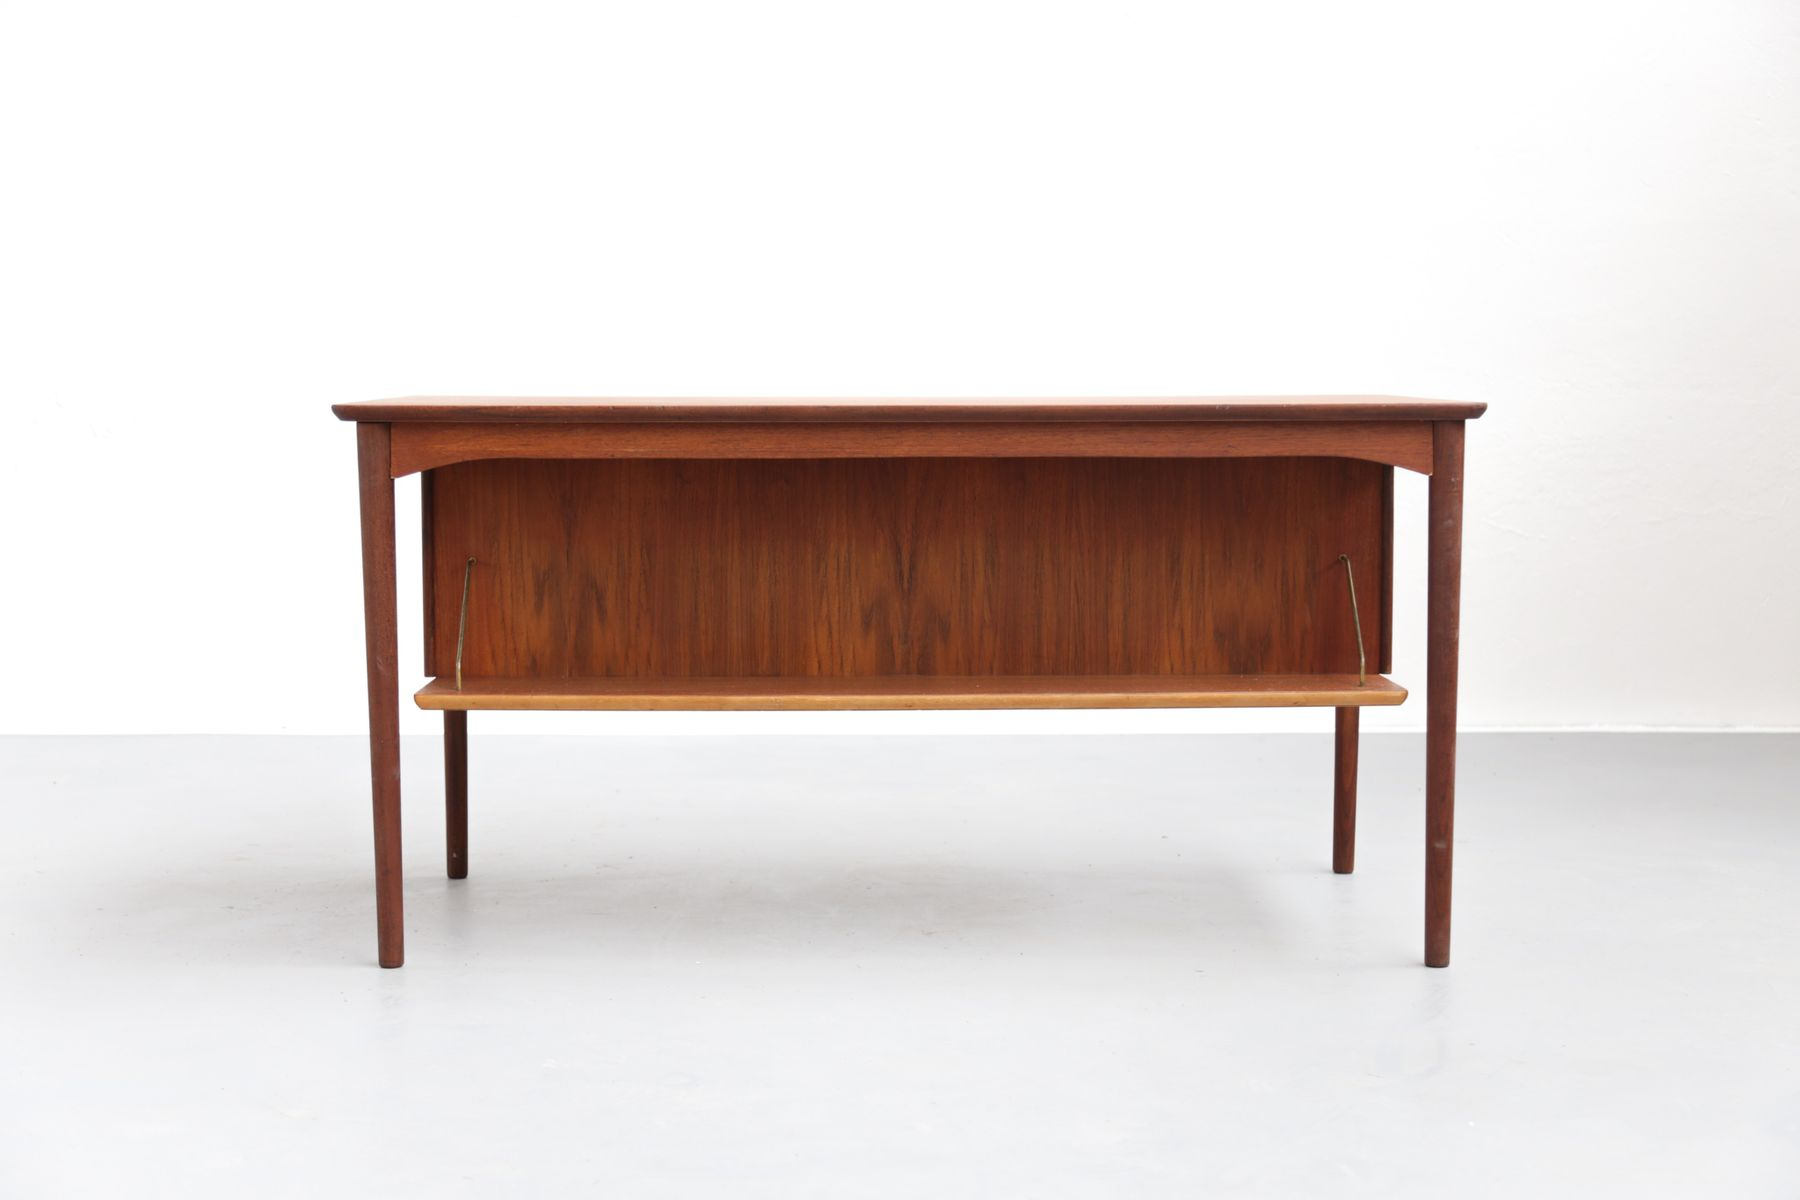 Scandinavian Style Desk vintage scandinavian style teak desk for sale at pamono